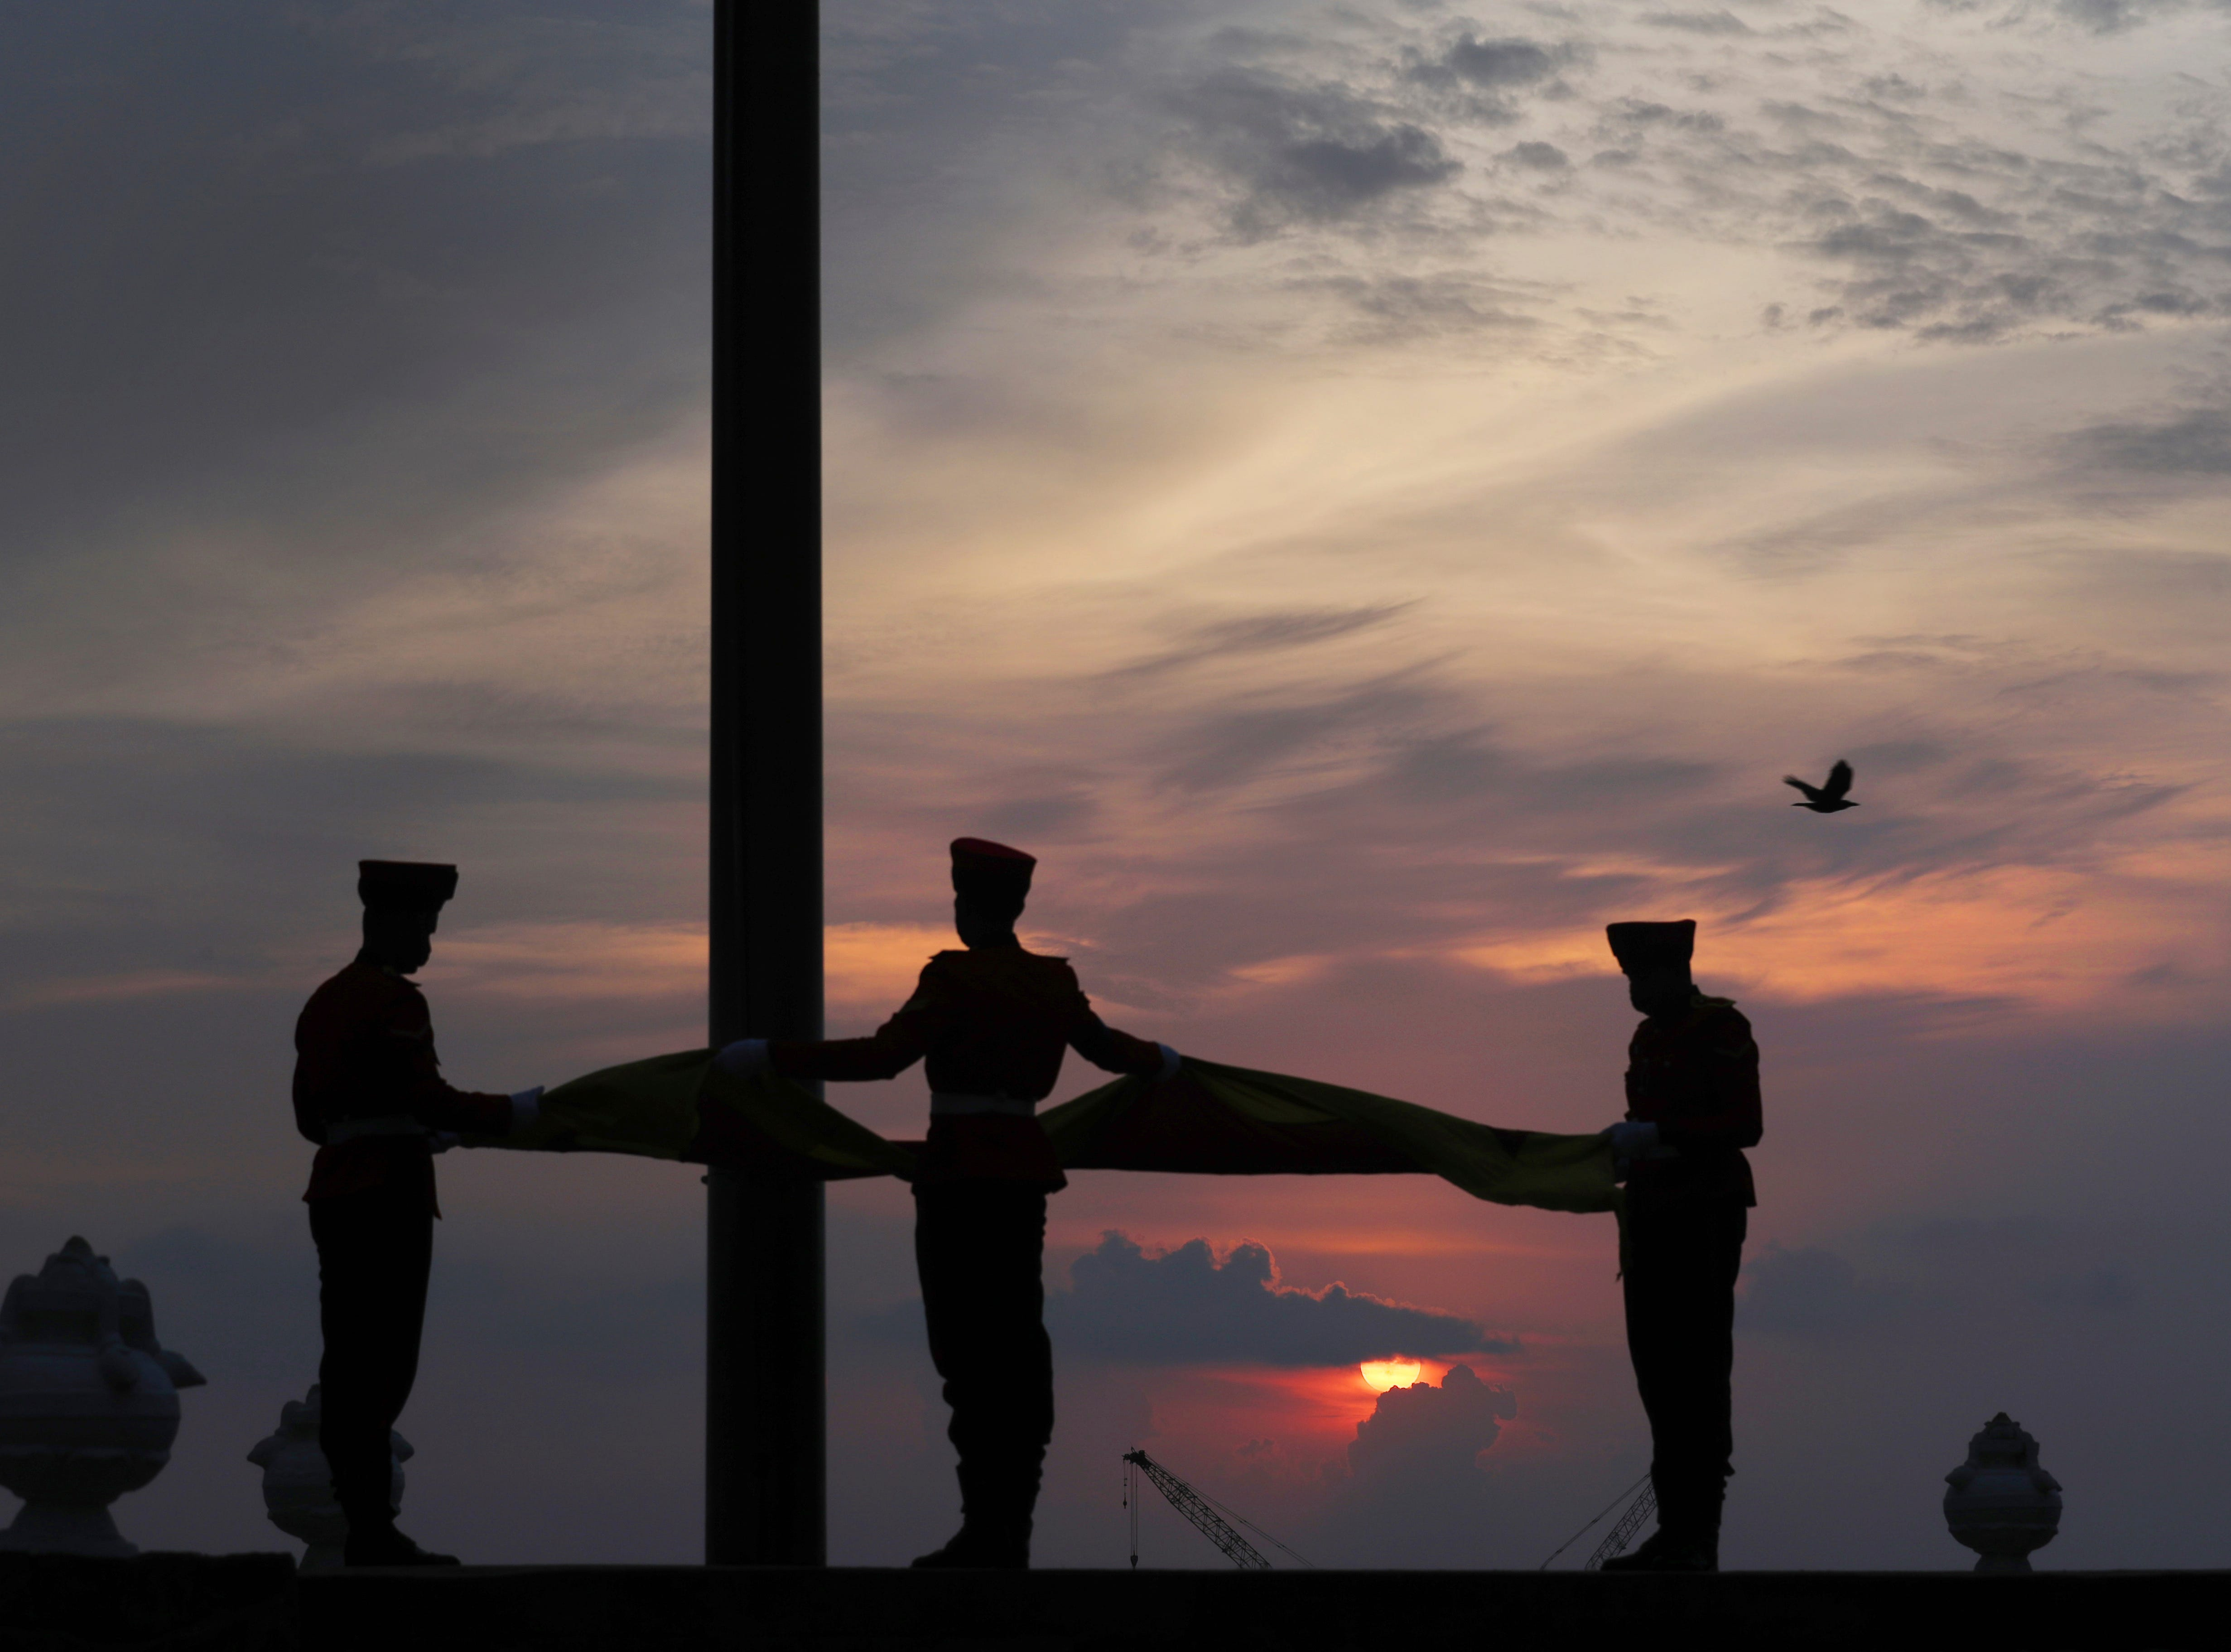 Soldiers lower the national flag as the sun sets on Sunday in Colombo, Sri Lanka, April 28, 2019. In a rare show of unity, Sri Lankan President Maithripala Sirisena, Prime Minister Ranil Wickremesinghe and opposition leader Mahinda Rajapaksa attended the Sunday Mass in person. Their political rivalry and government dysfunction are blamed for a failure to act upon near-specific information received from foreign intelligence agencies that preceded the bombings, which targeted three churches and three luxury hotels.